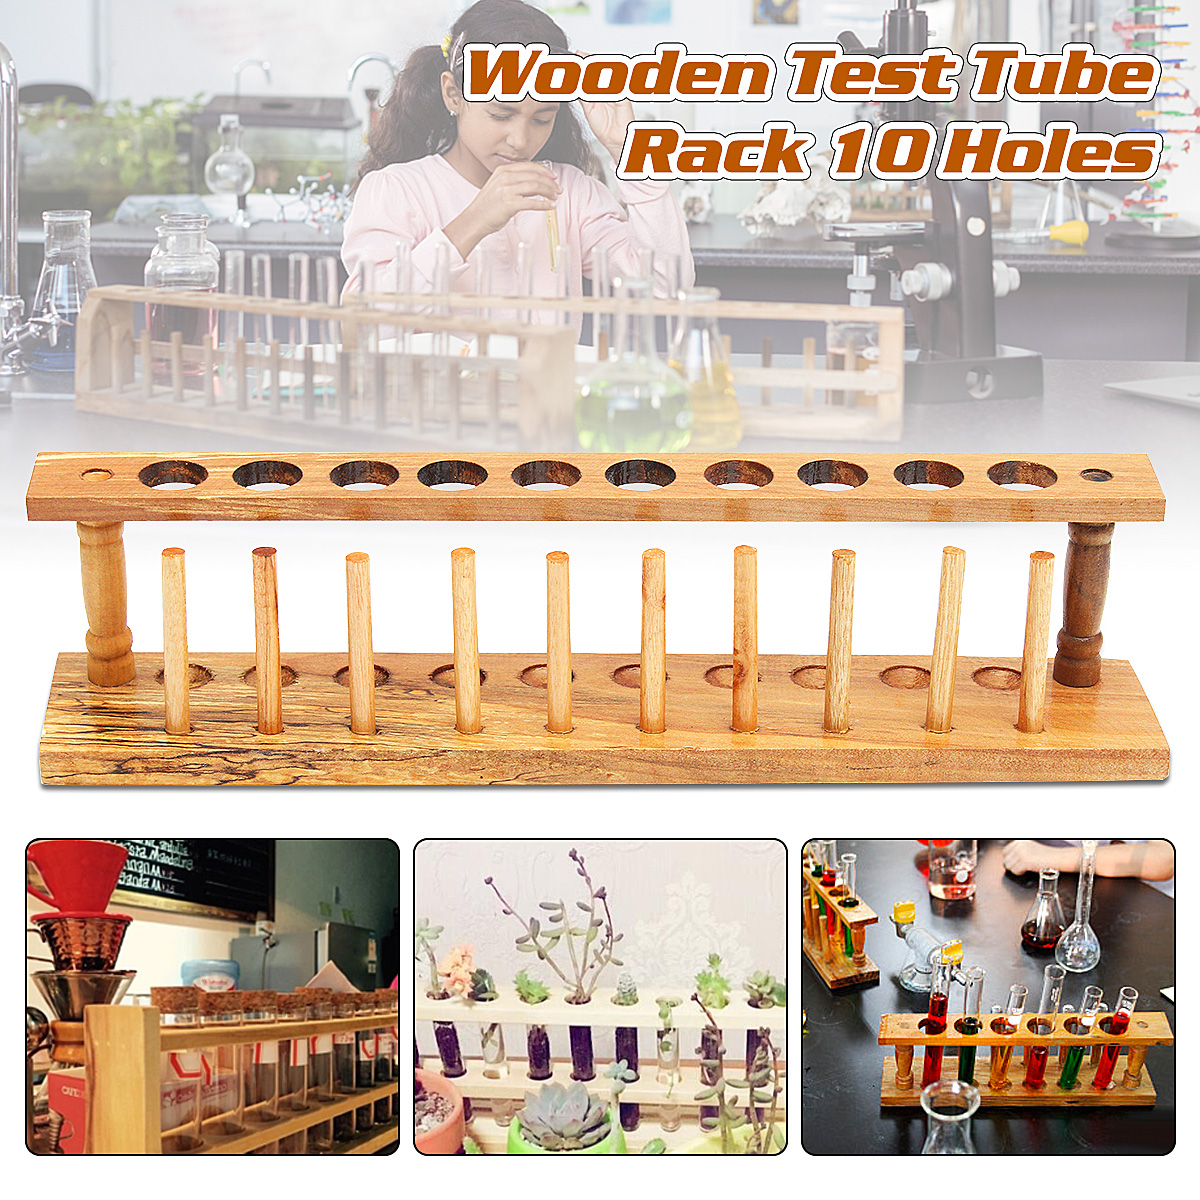 New Wooden Laboratory Test Tube Rack Test Tubing Holder Rack Shelf Storage Stand For School Lab Equipment sales promotion 1pcs wooden test tube rack 12holes 24pcs glass test tube 24pcs silicone stopper